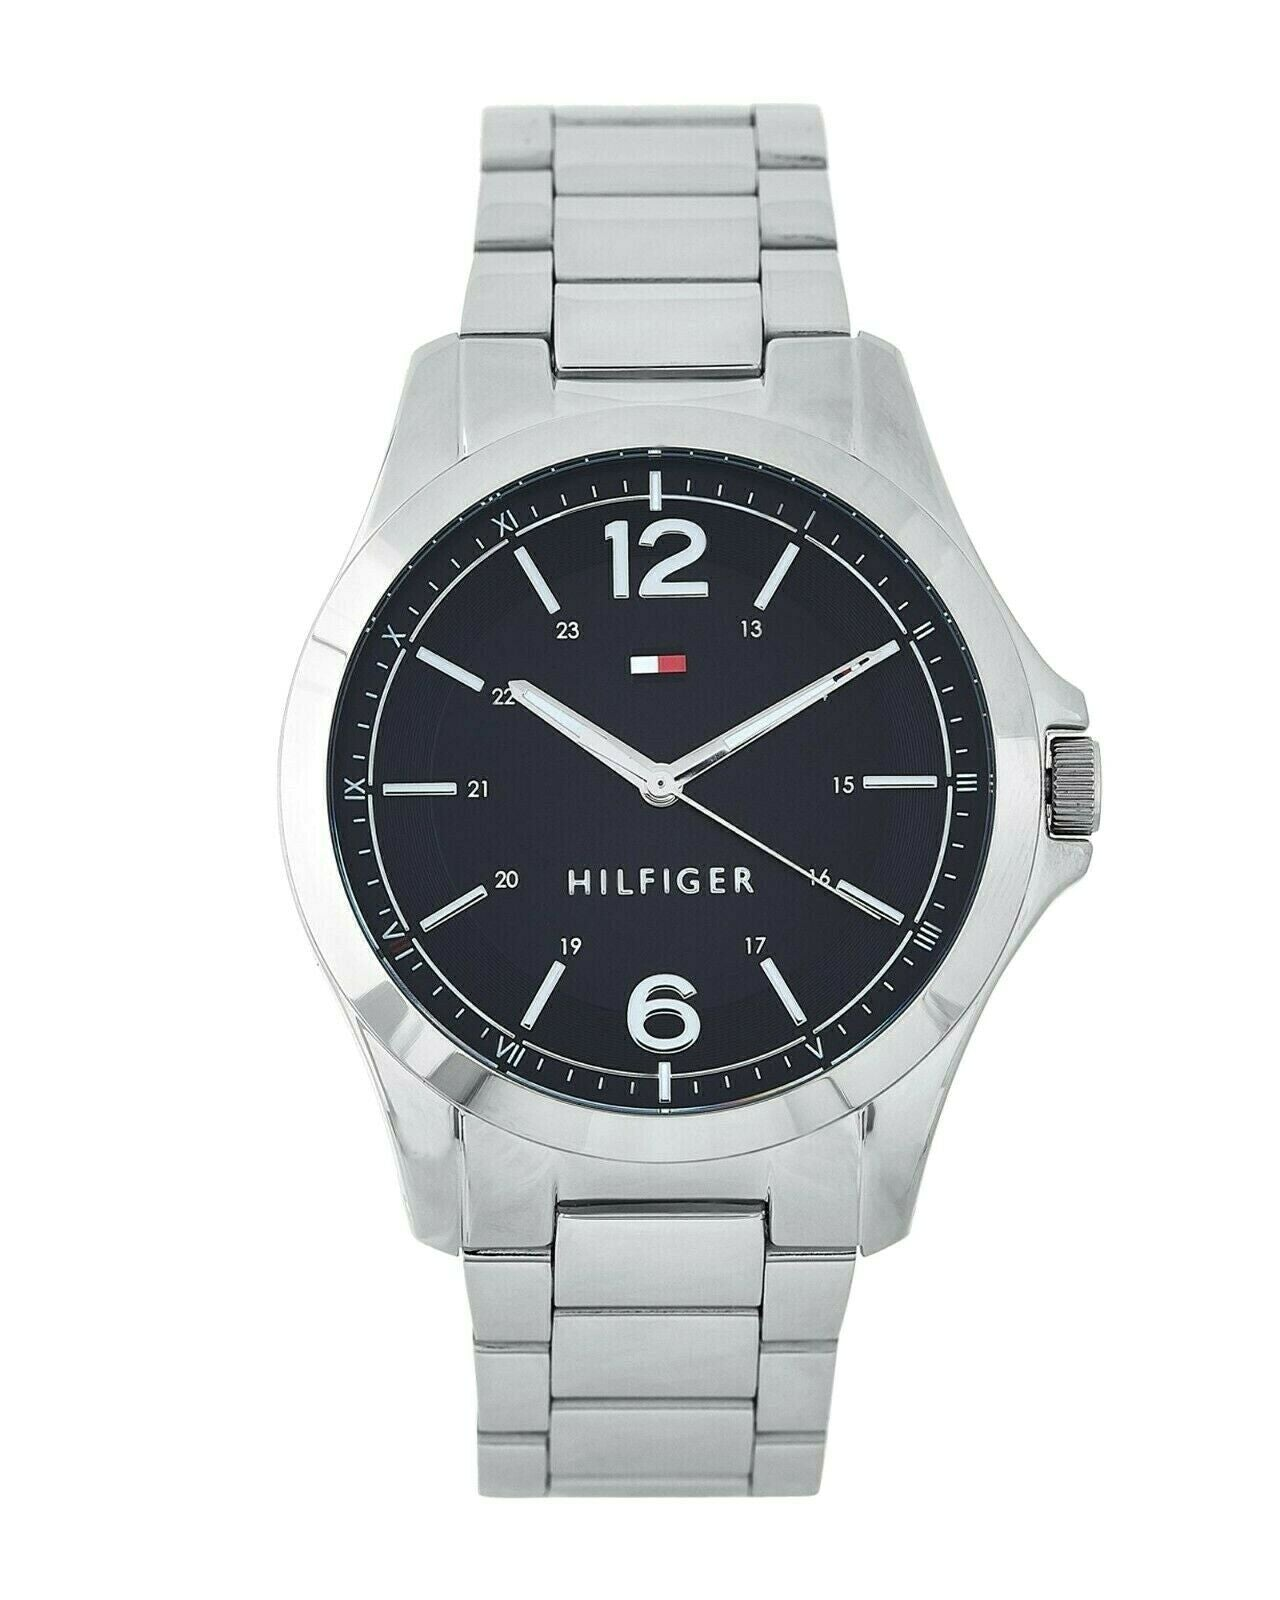 Tommy Hilfiger Men's Water Resistant Stainless Steel Analog Watch 1791460 $110